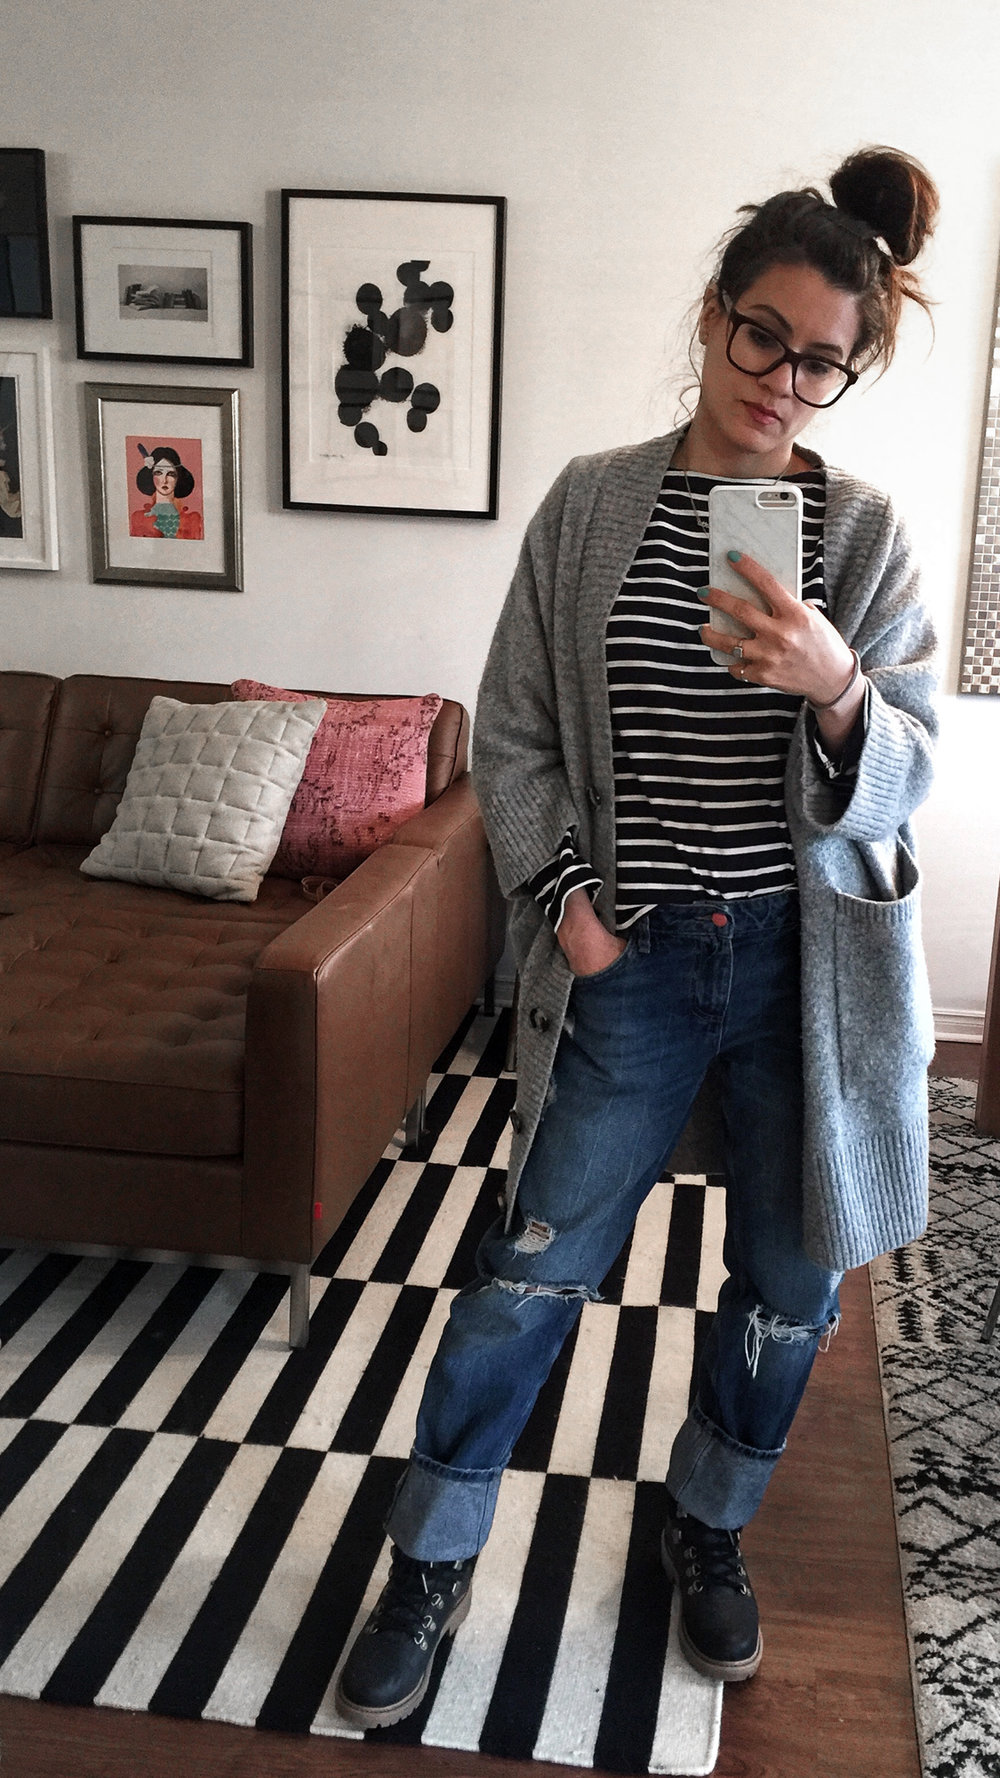 woahstyle.com - 365 outfits - day 09 spring 2018 - zara boyfriend jeans, uniqlo stired top, grey cardigan, toms boots, nathalie martin.jpg